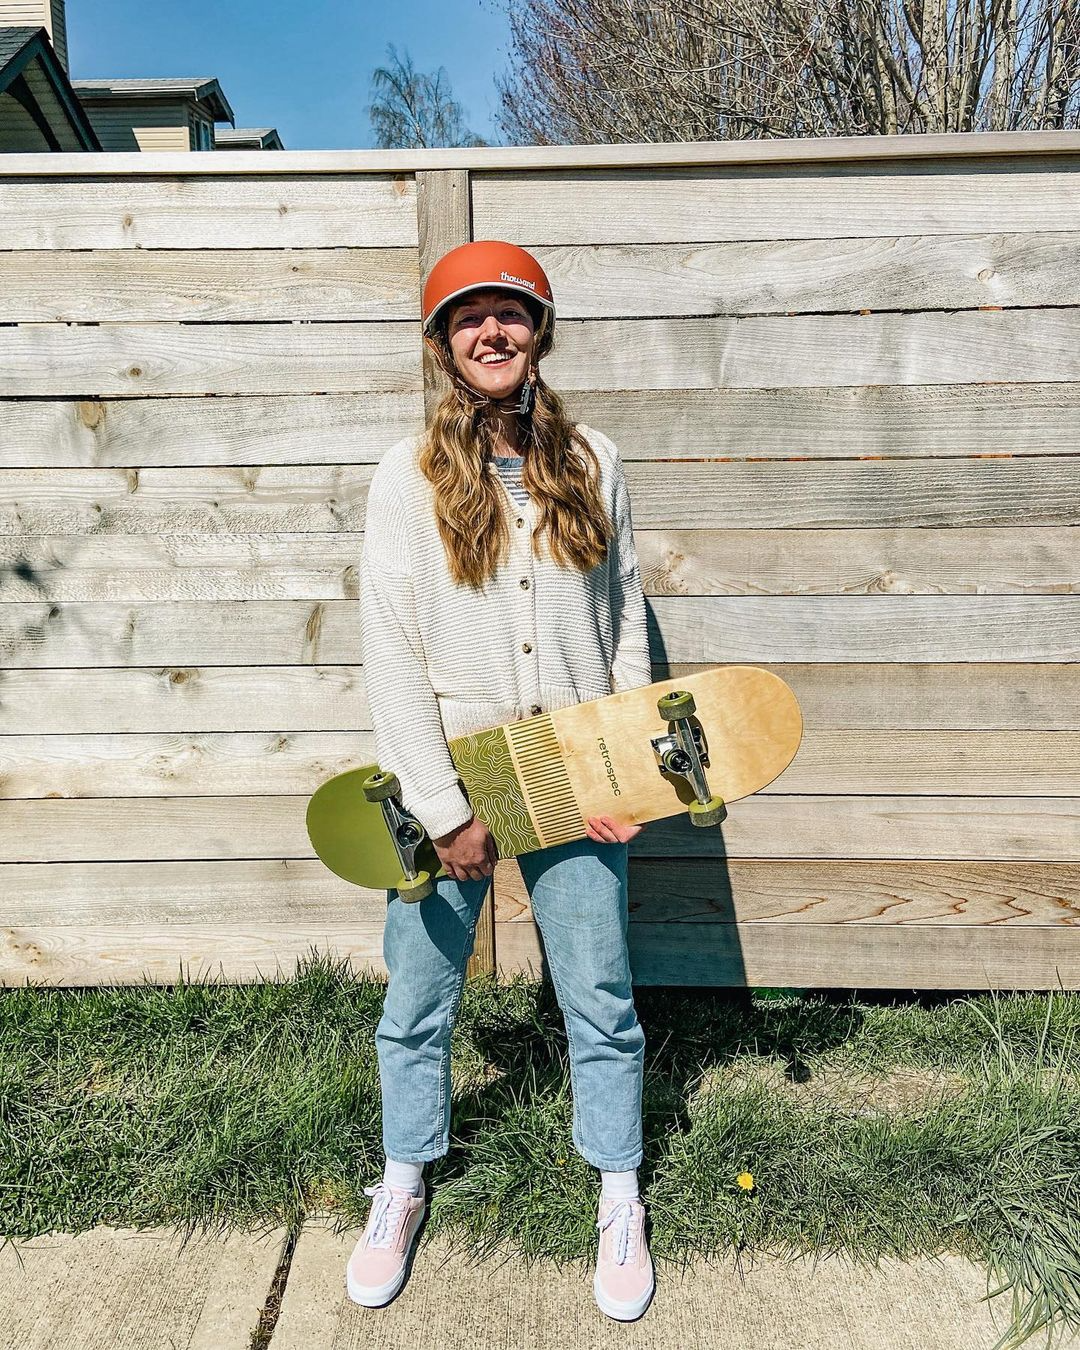 person with a skateboard and wearing a Thousand helmet